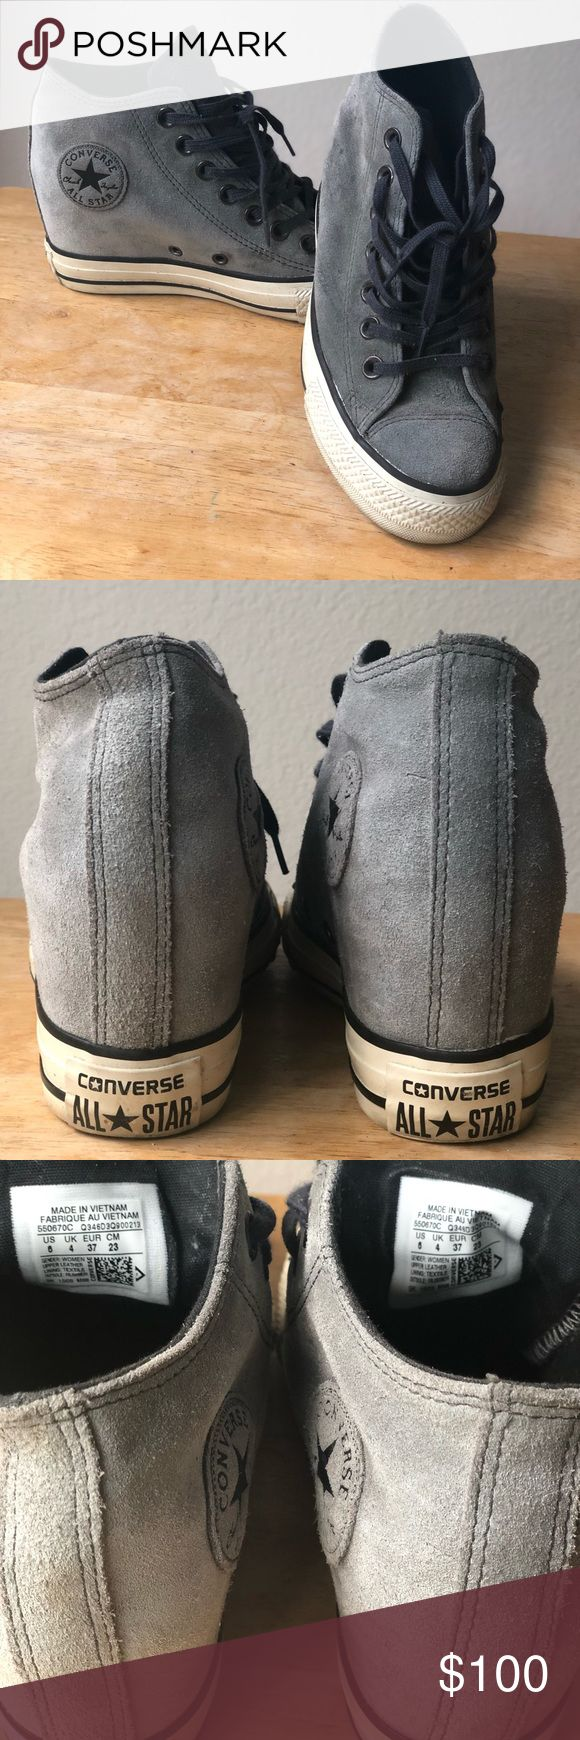 Extra pics Extra pics of gray converse wedge sneakers Shoes